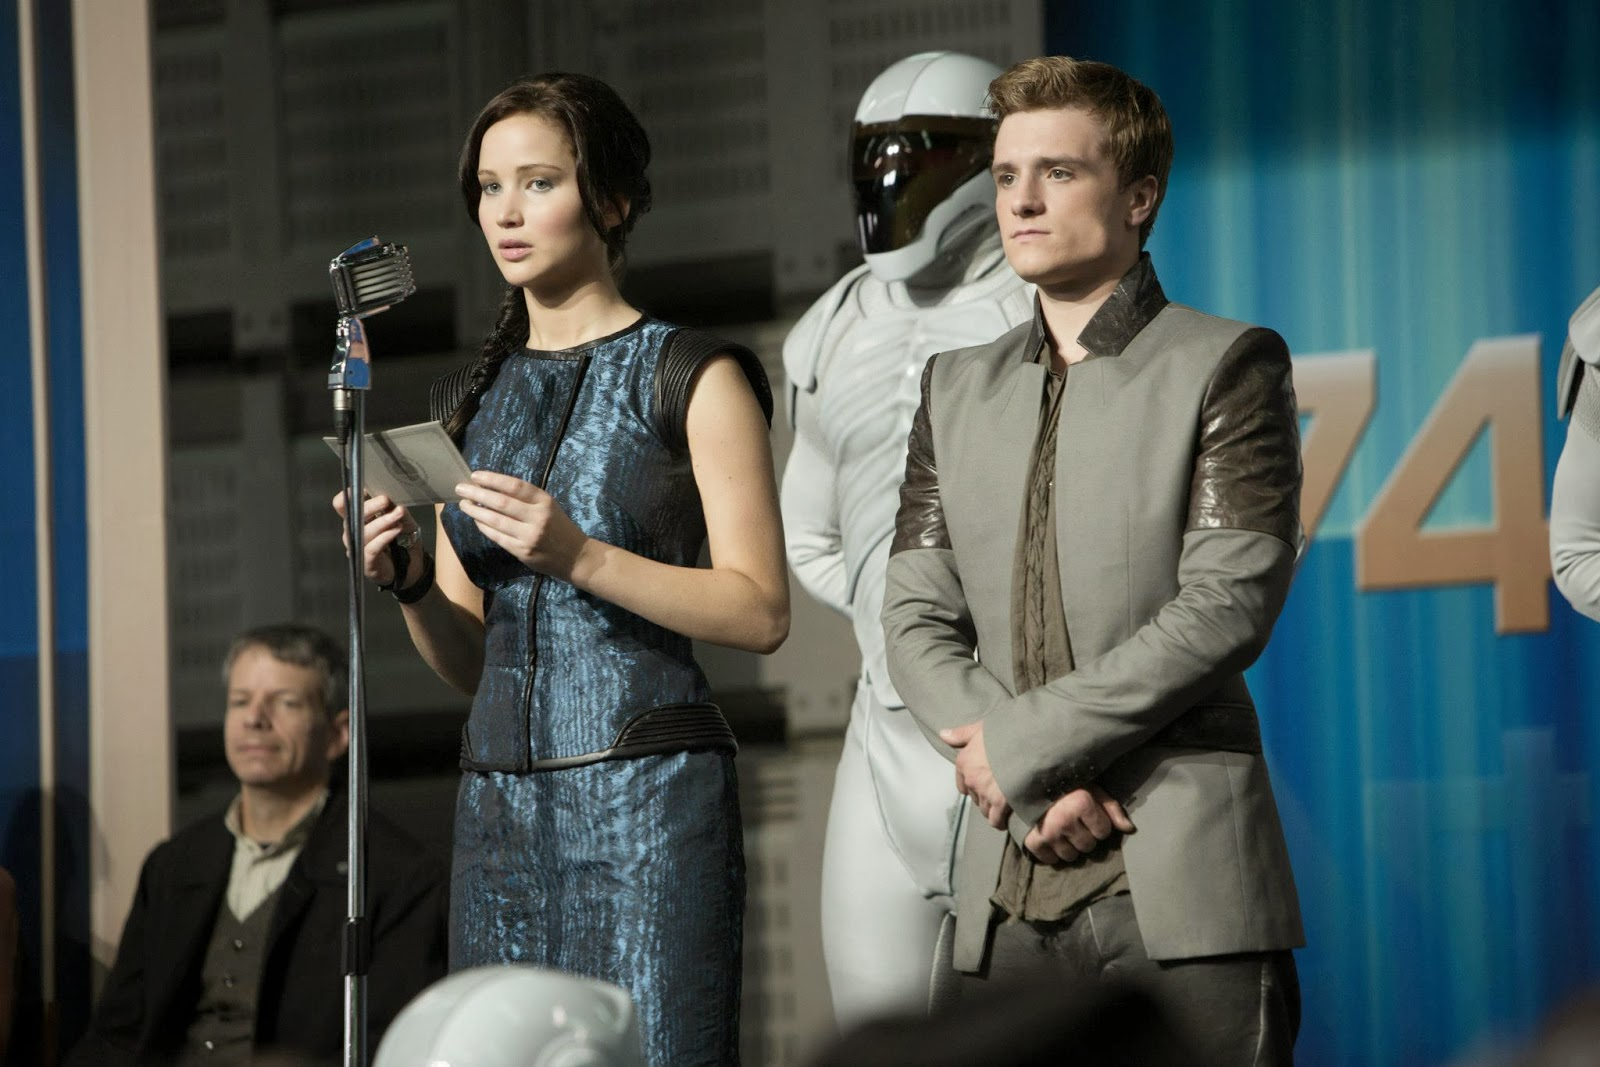 the code is zeek catching fire burns down the competition catching fire burns down the competition movie review